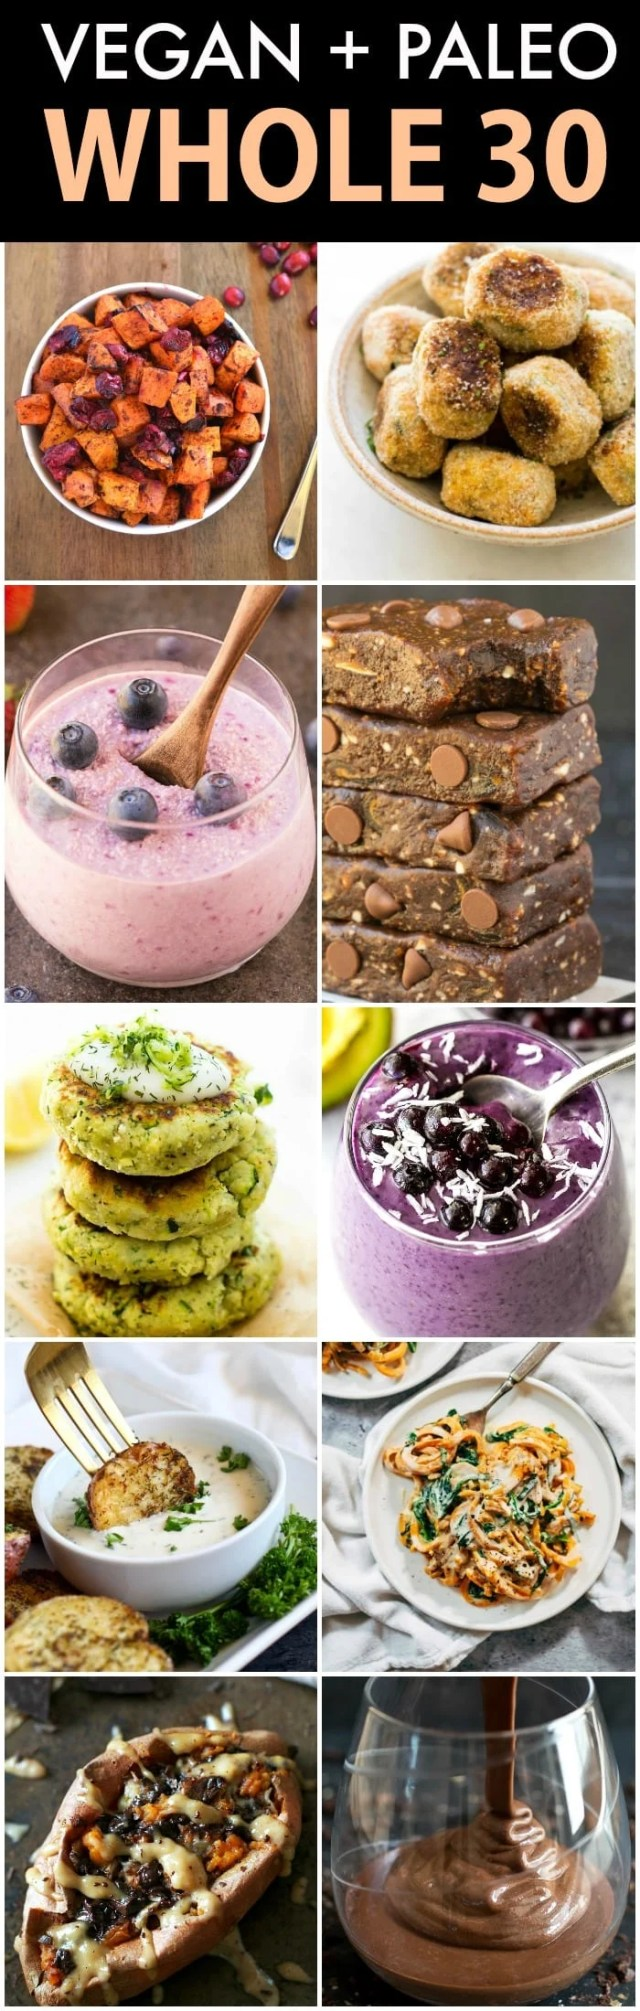 A collage of 10 vegan and paleo whole30 approved foods and recipes, including smoothies, larabars, sweet potato noodles, zucchini fritters and baked potatoes